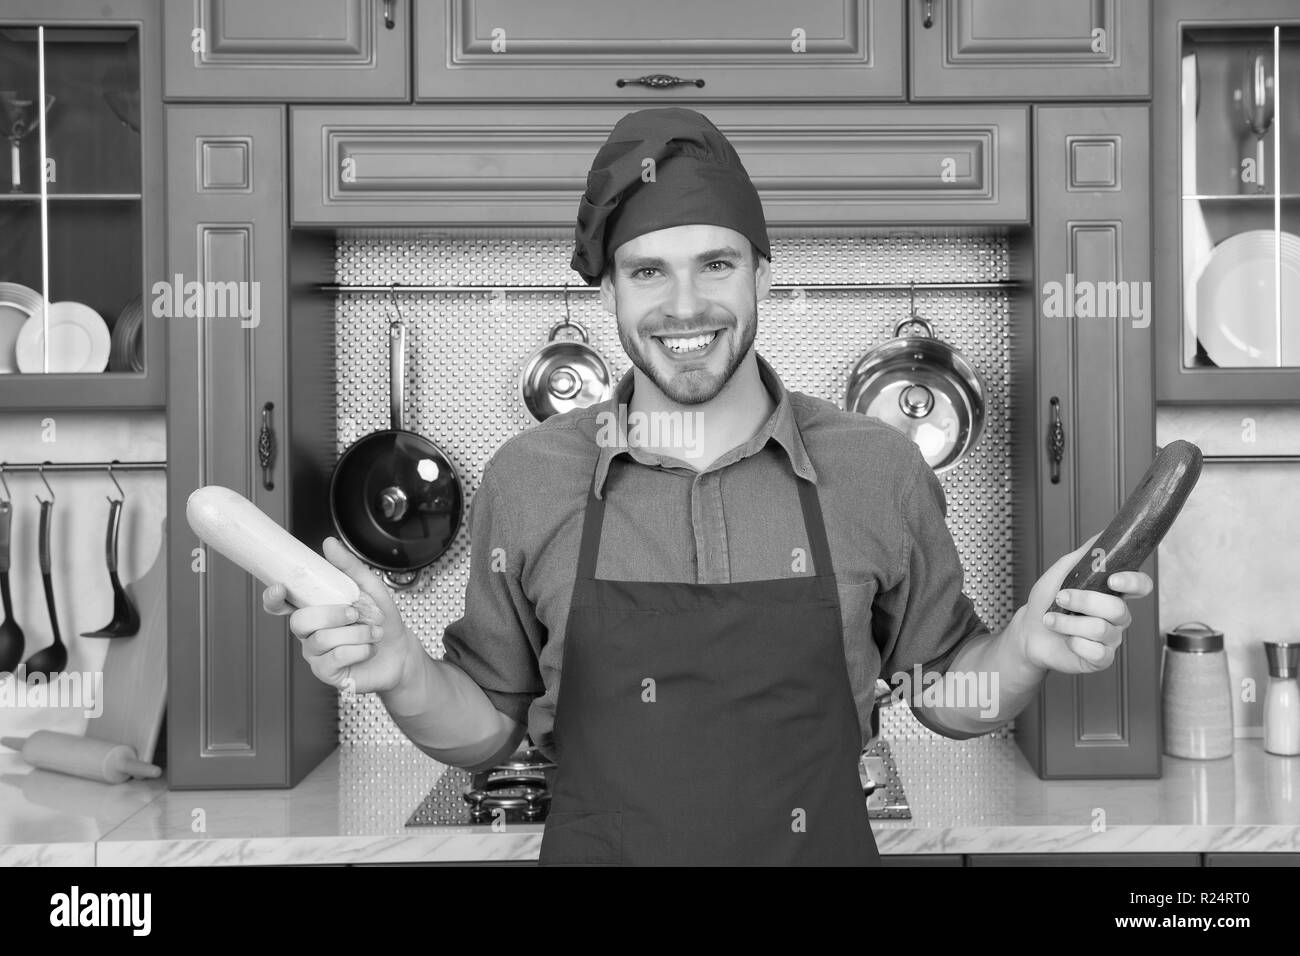 Substitute carefully. Although substitutions seem obvious they can be tricky business. Ruined dish is waste of time. Man chef substitutes marrow with zucchini. Chef smiling knows kitchen tricks. - Stock Image